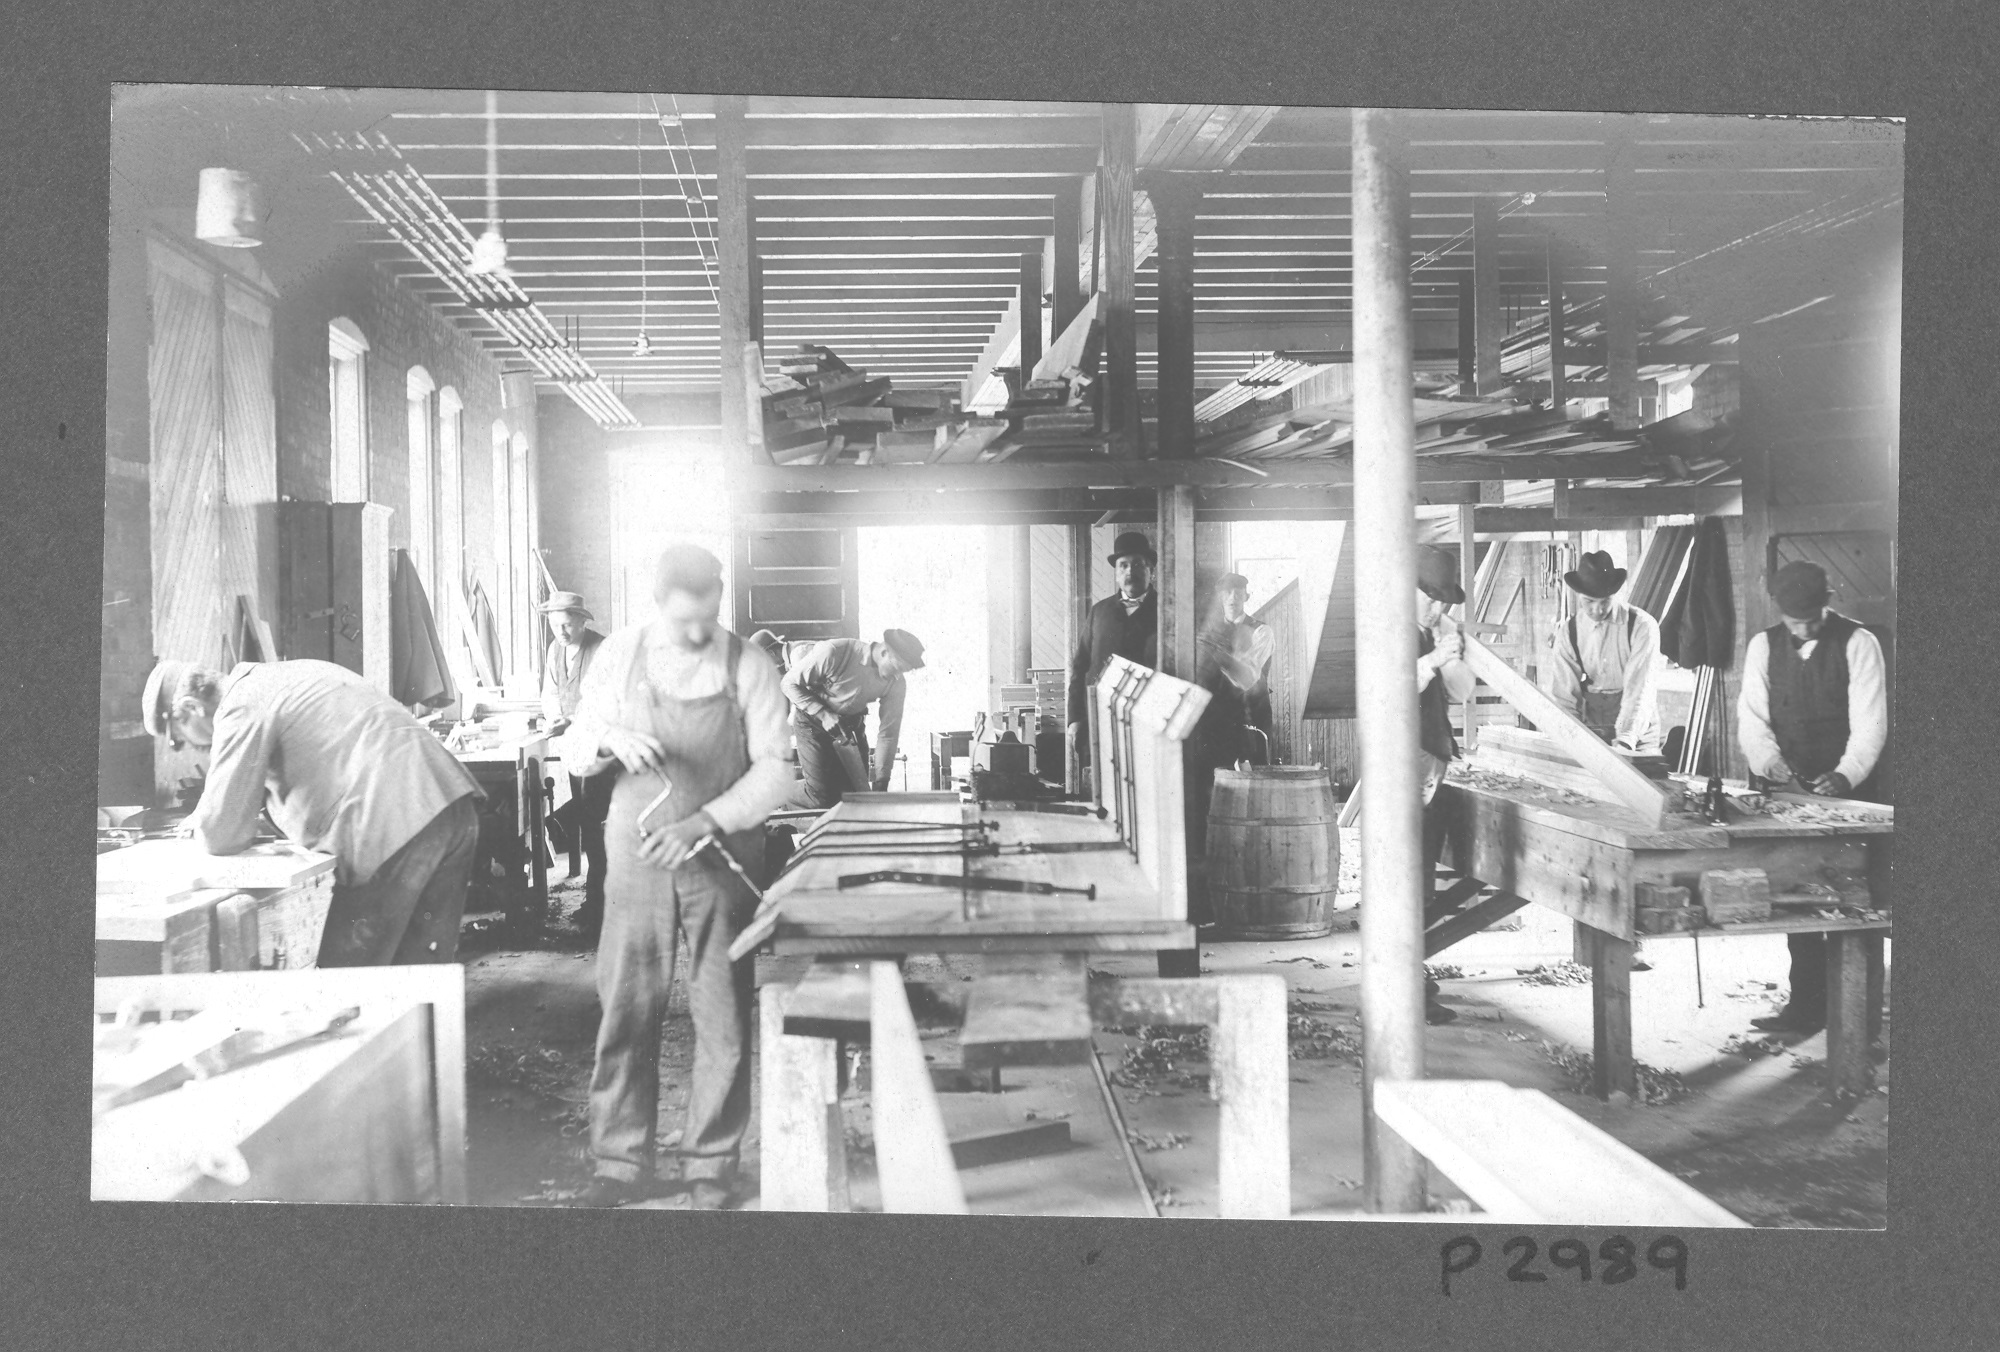 Image of men working in woodshop at Craig Colony